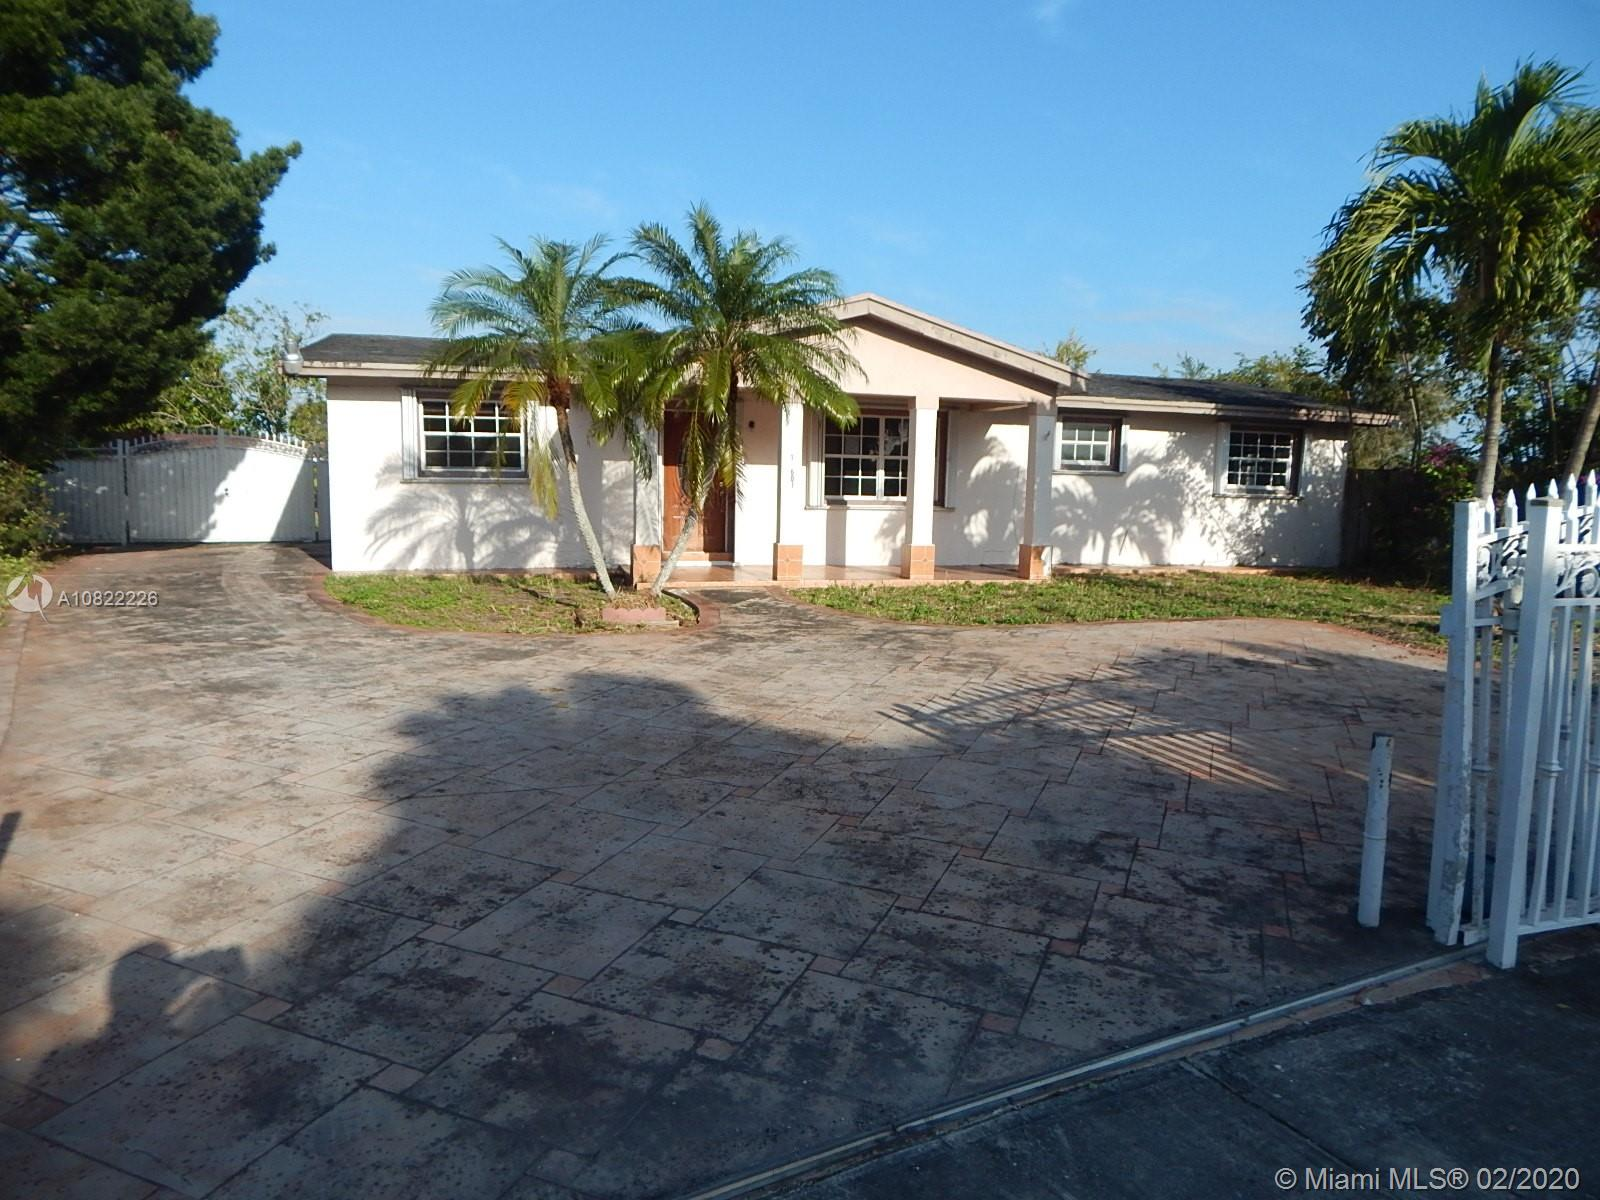 14601 SW 293rd Ter, Homestead, FL 33033 - Homestead, FL real estate listing